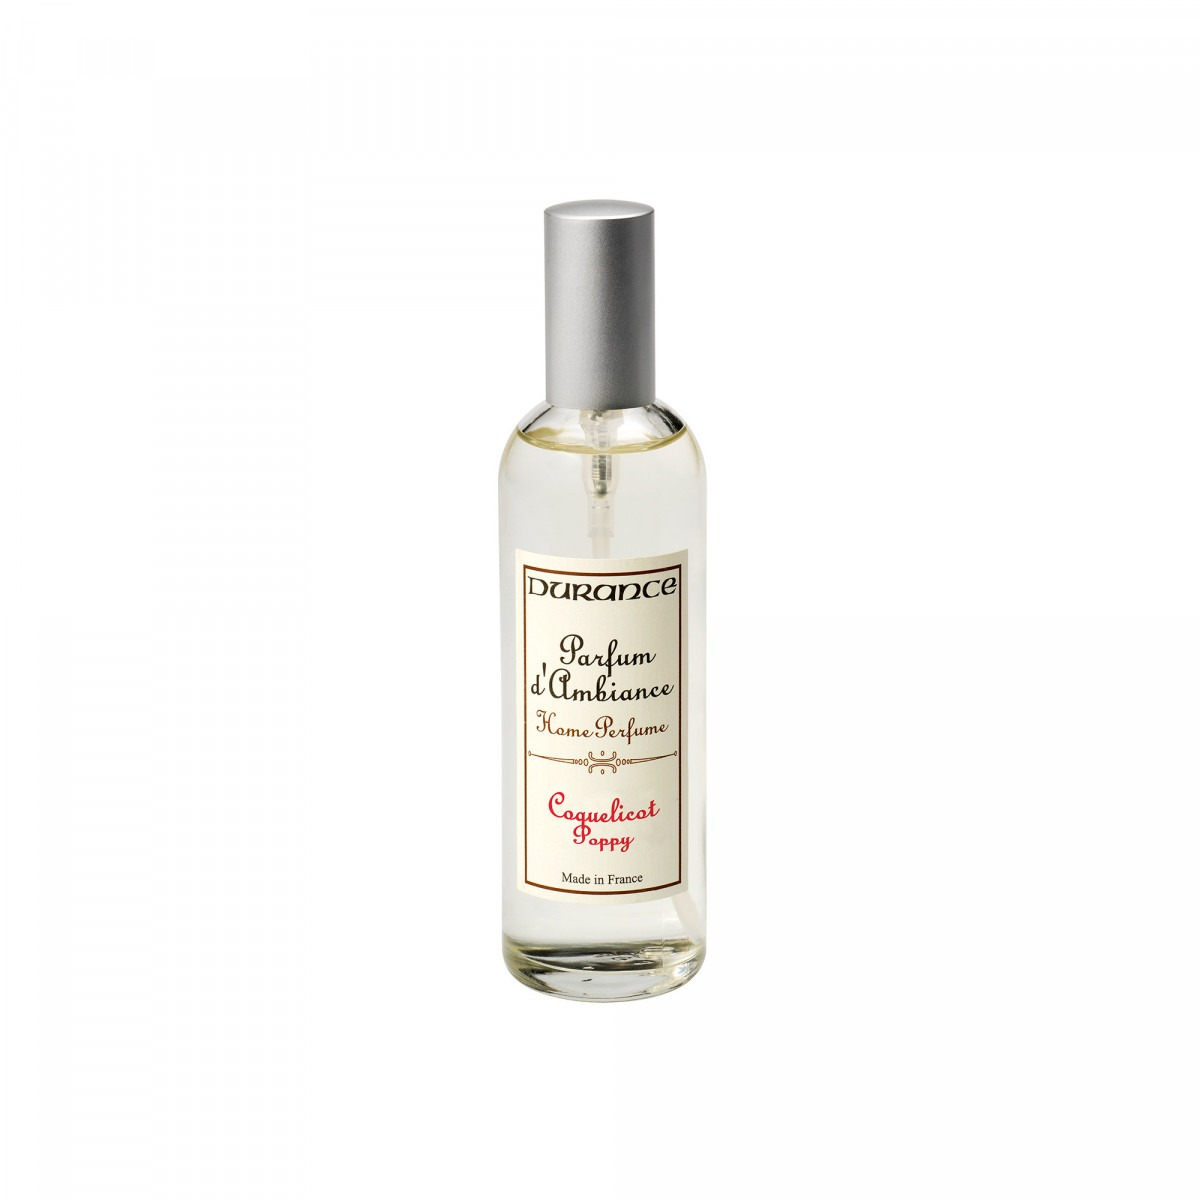 Durance Poppy Room Spray 100ml